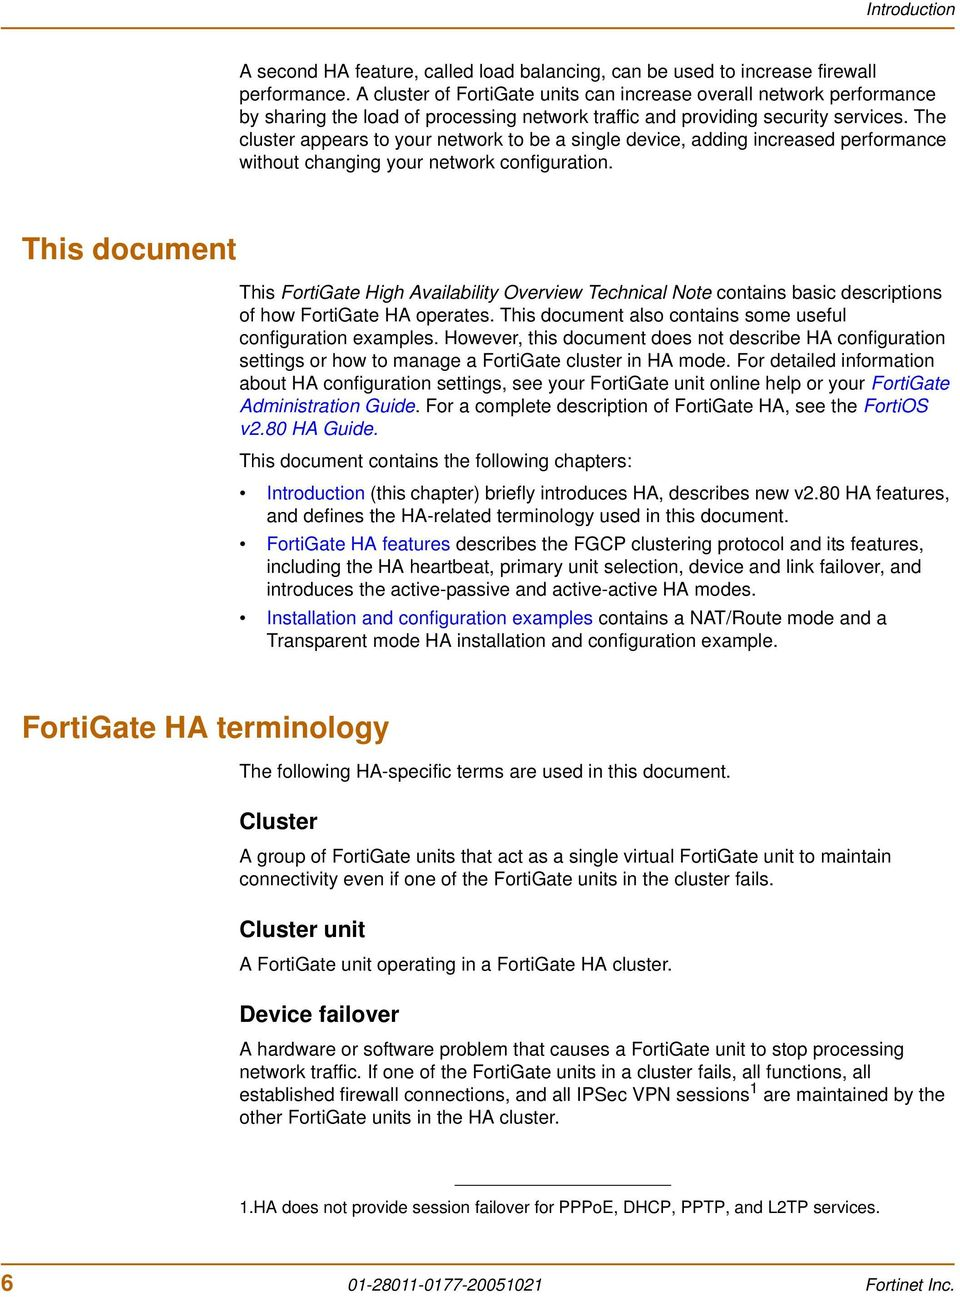 FortiGate High Availability Overview Technical Note - PDF